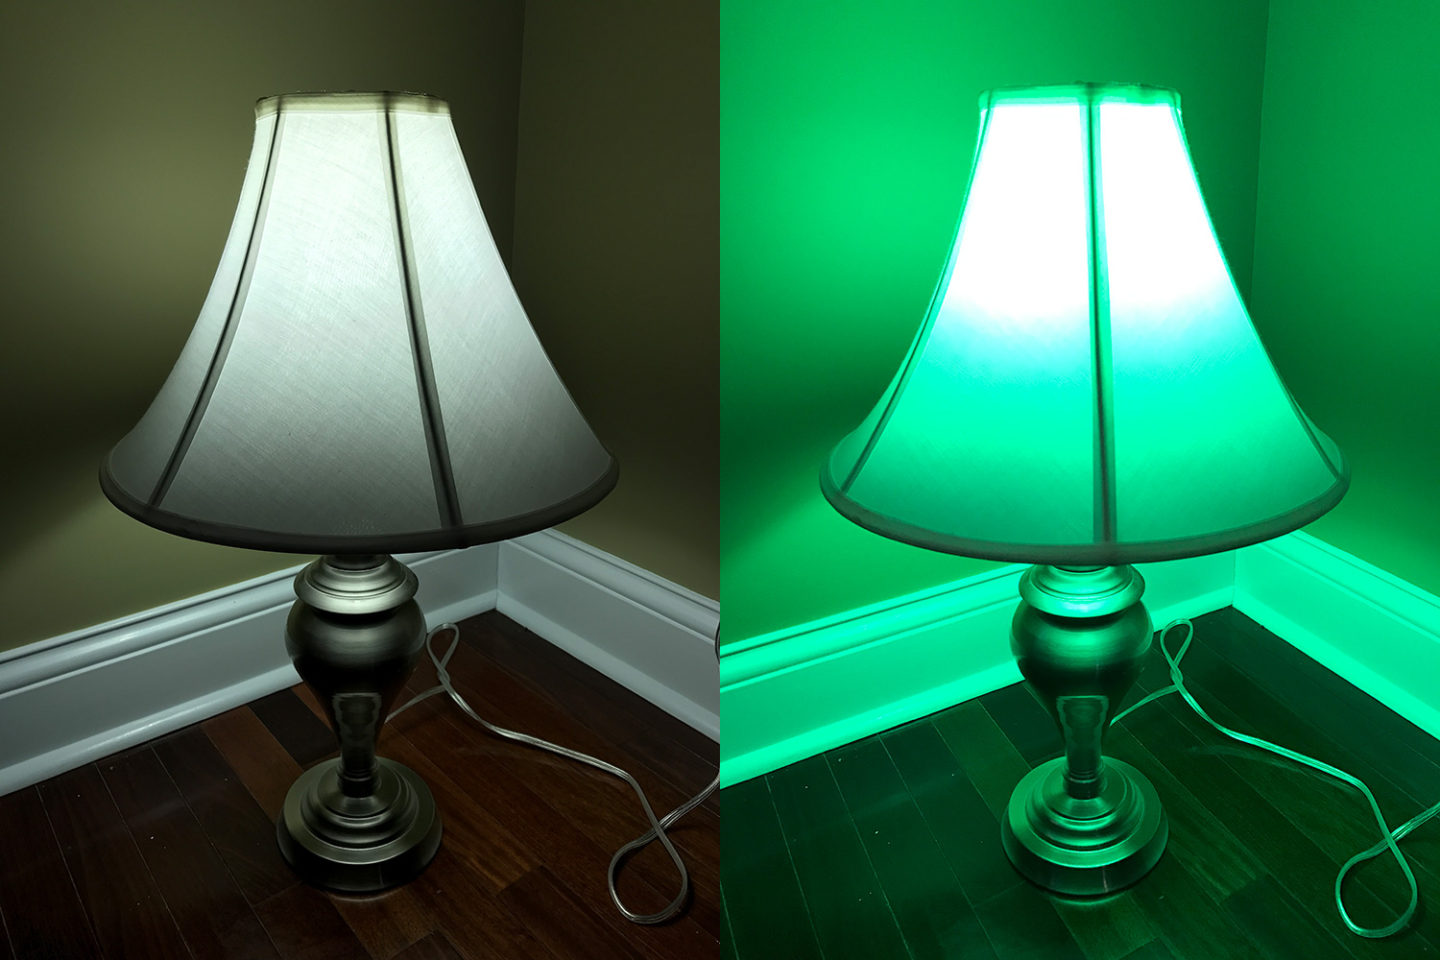 Hue G10 Philips Hue With Richer Colors A Comparison At Home In The Future